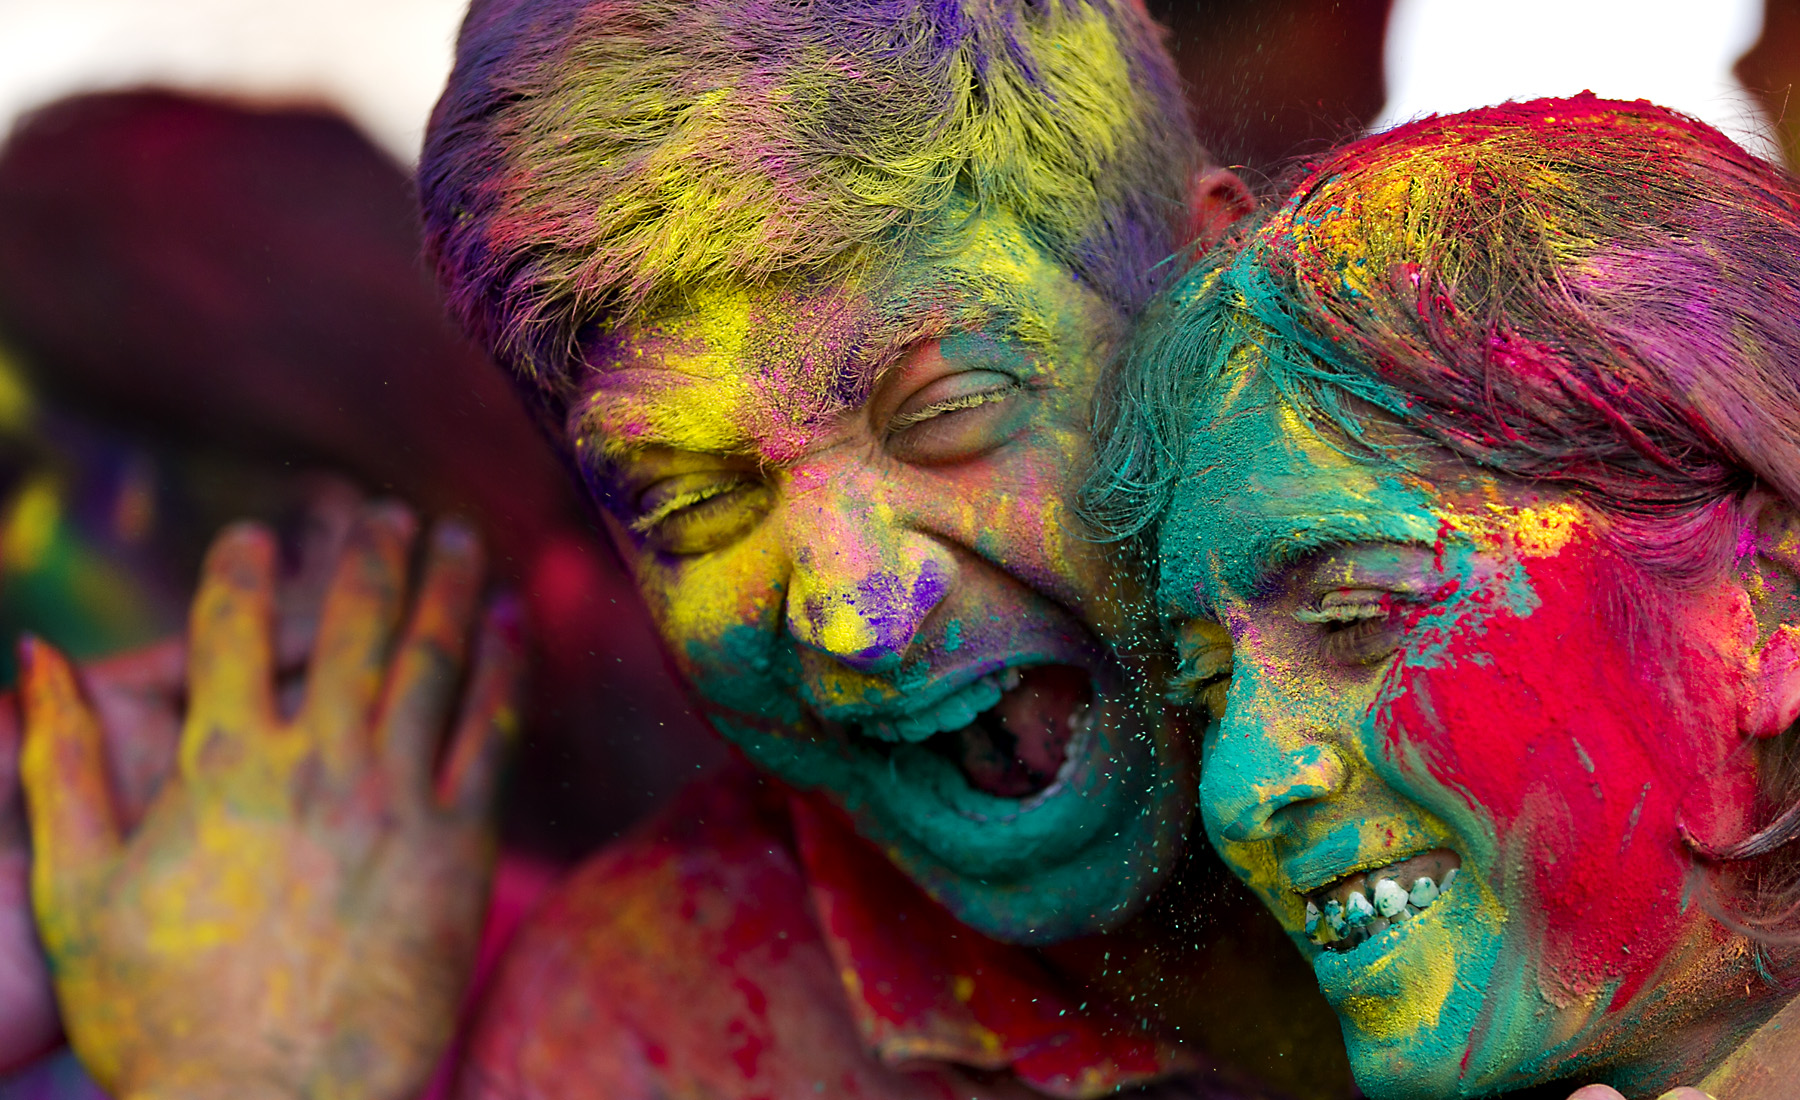 (USE THIS IMAGE) 30 MAR 2013: Nishant Bhargava, left, and Smriti Rai, right, laugh as they are painted with gulal, color dyes, as the celebrate the during Holi, the festival of colors held at the Austin Hindu Temple and Community Center in Austin, Texas, on Saturday, March 30, 2013. The Holi Festival is a celebration welcoming the arrival of Spring. RODOLFO GONZALEZ / AMERICAN-STATESMAN